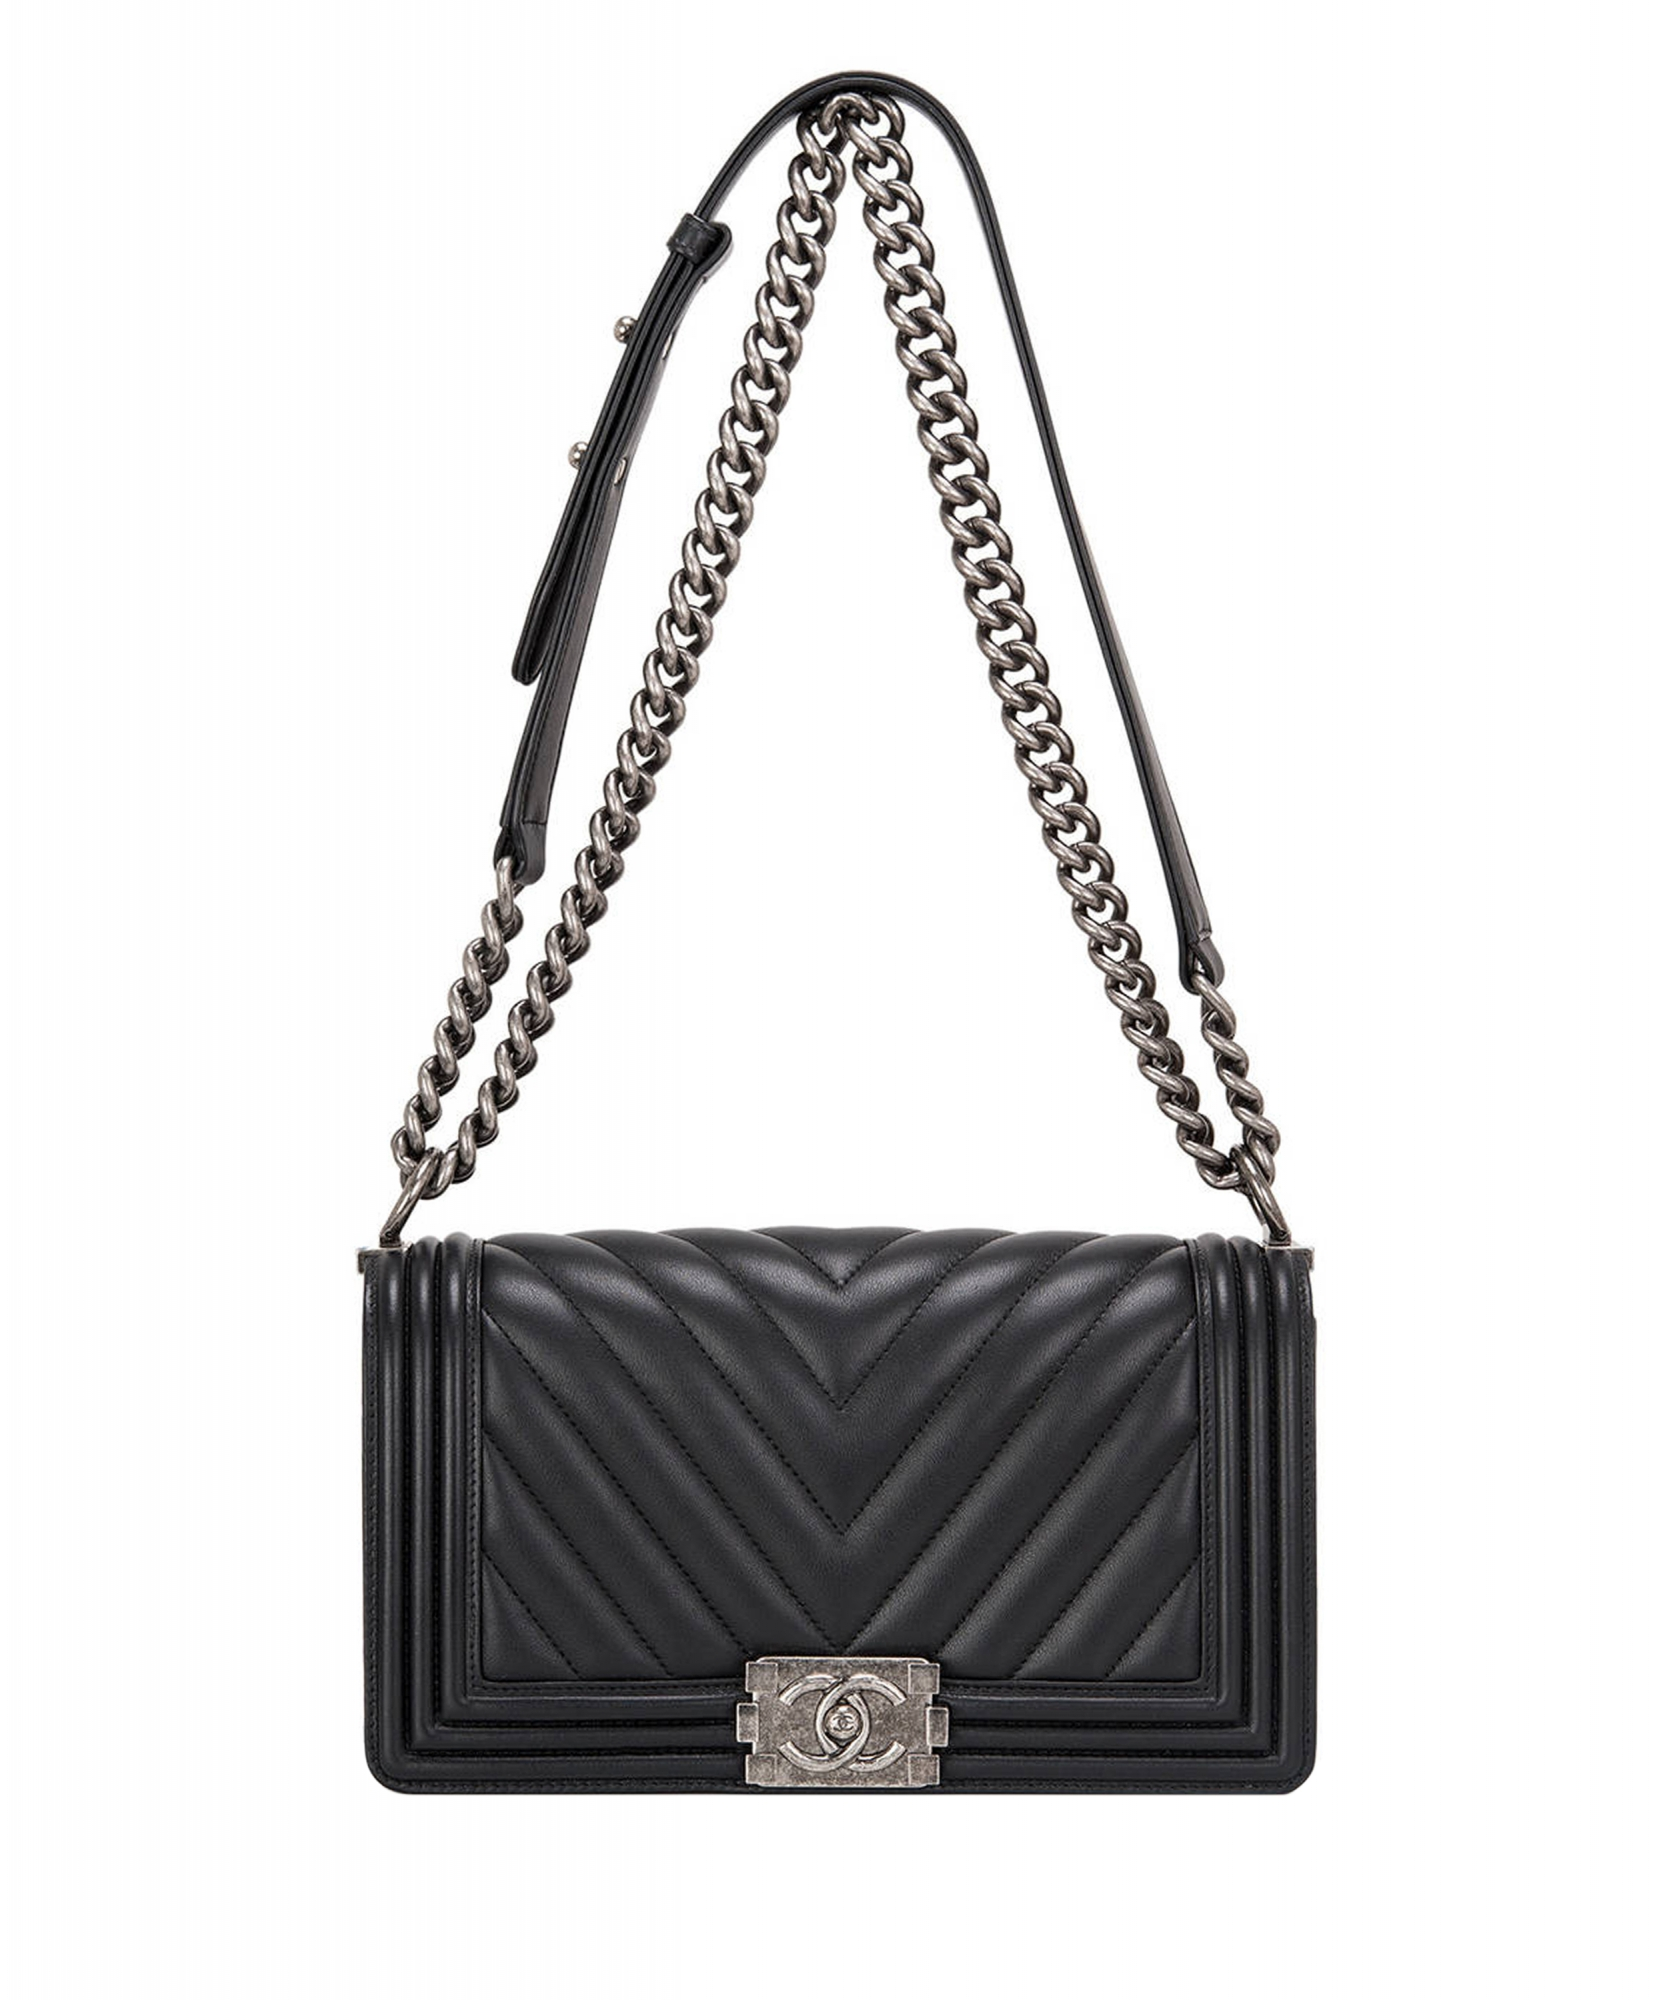 45763da706a6 Chanel Black Chevron Quilted Boy Bag New Medium